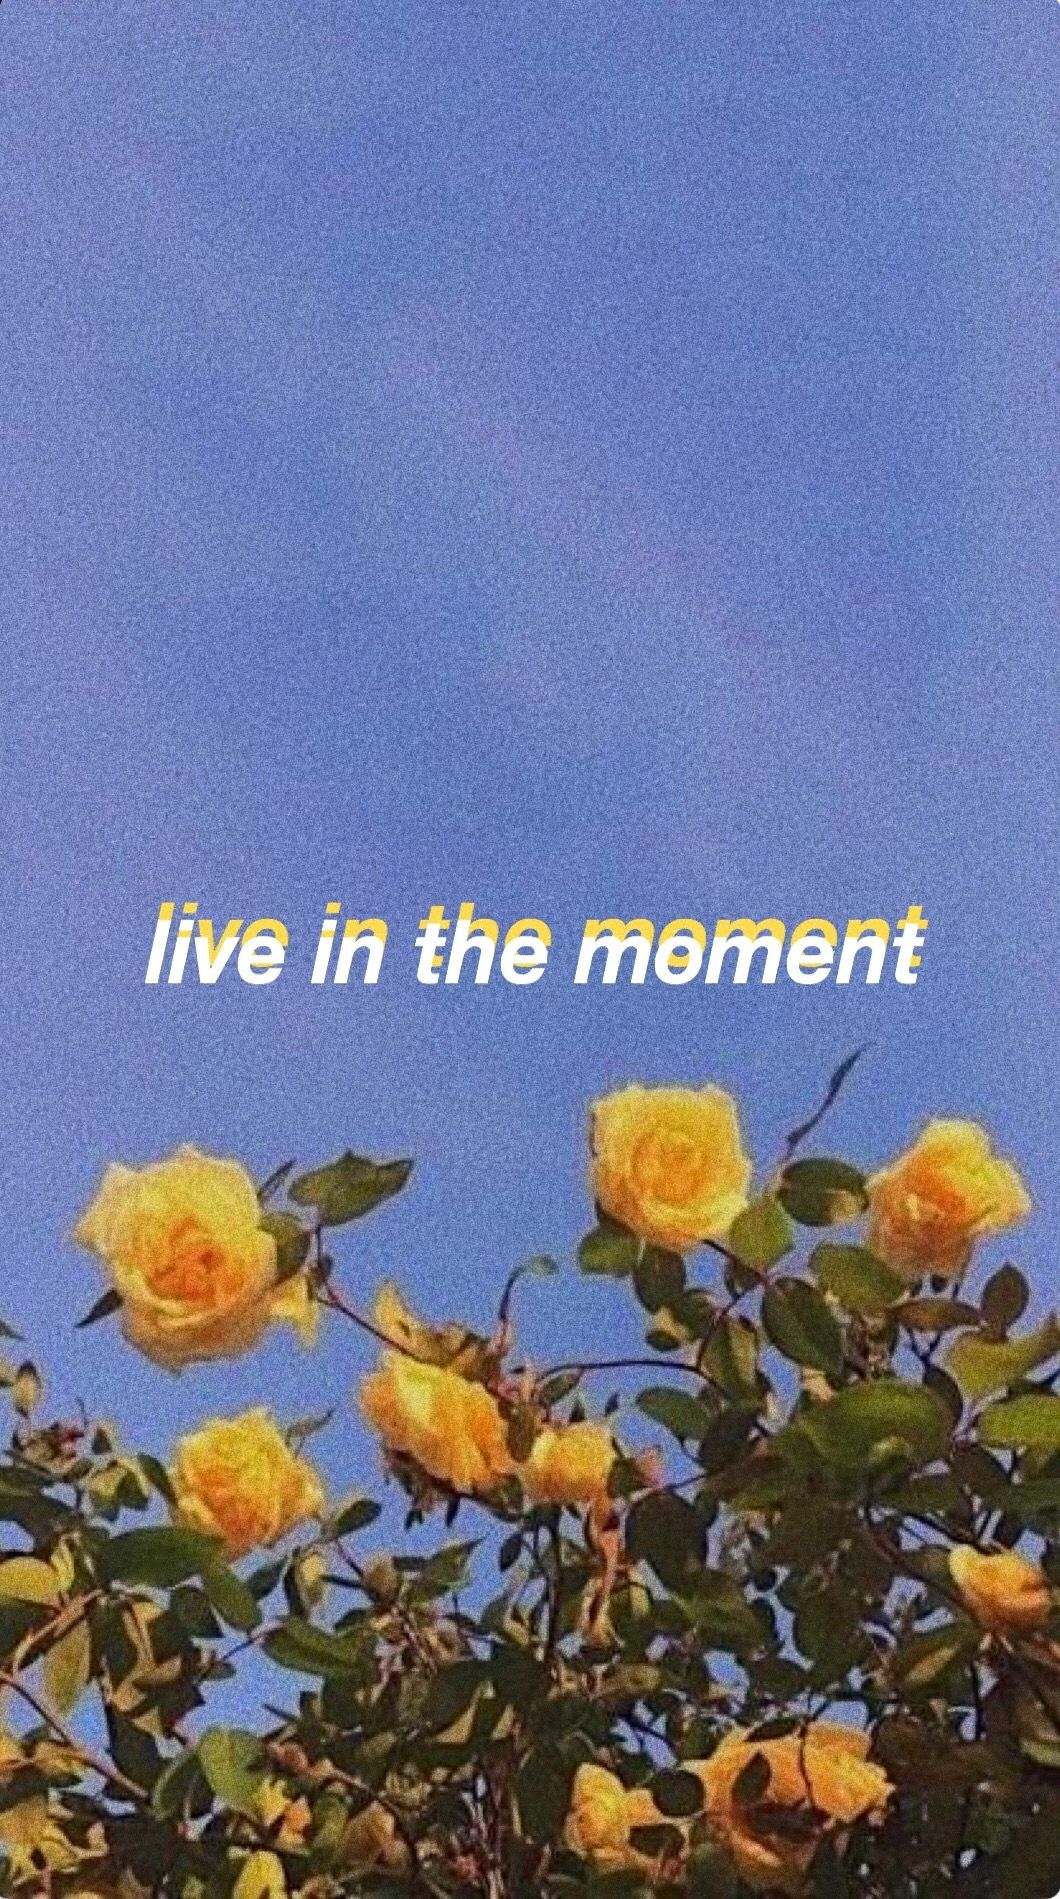 flaming hot cheetos  clairo lyric wallpapers in 2019 Pinterest 1060x1899